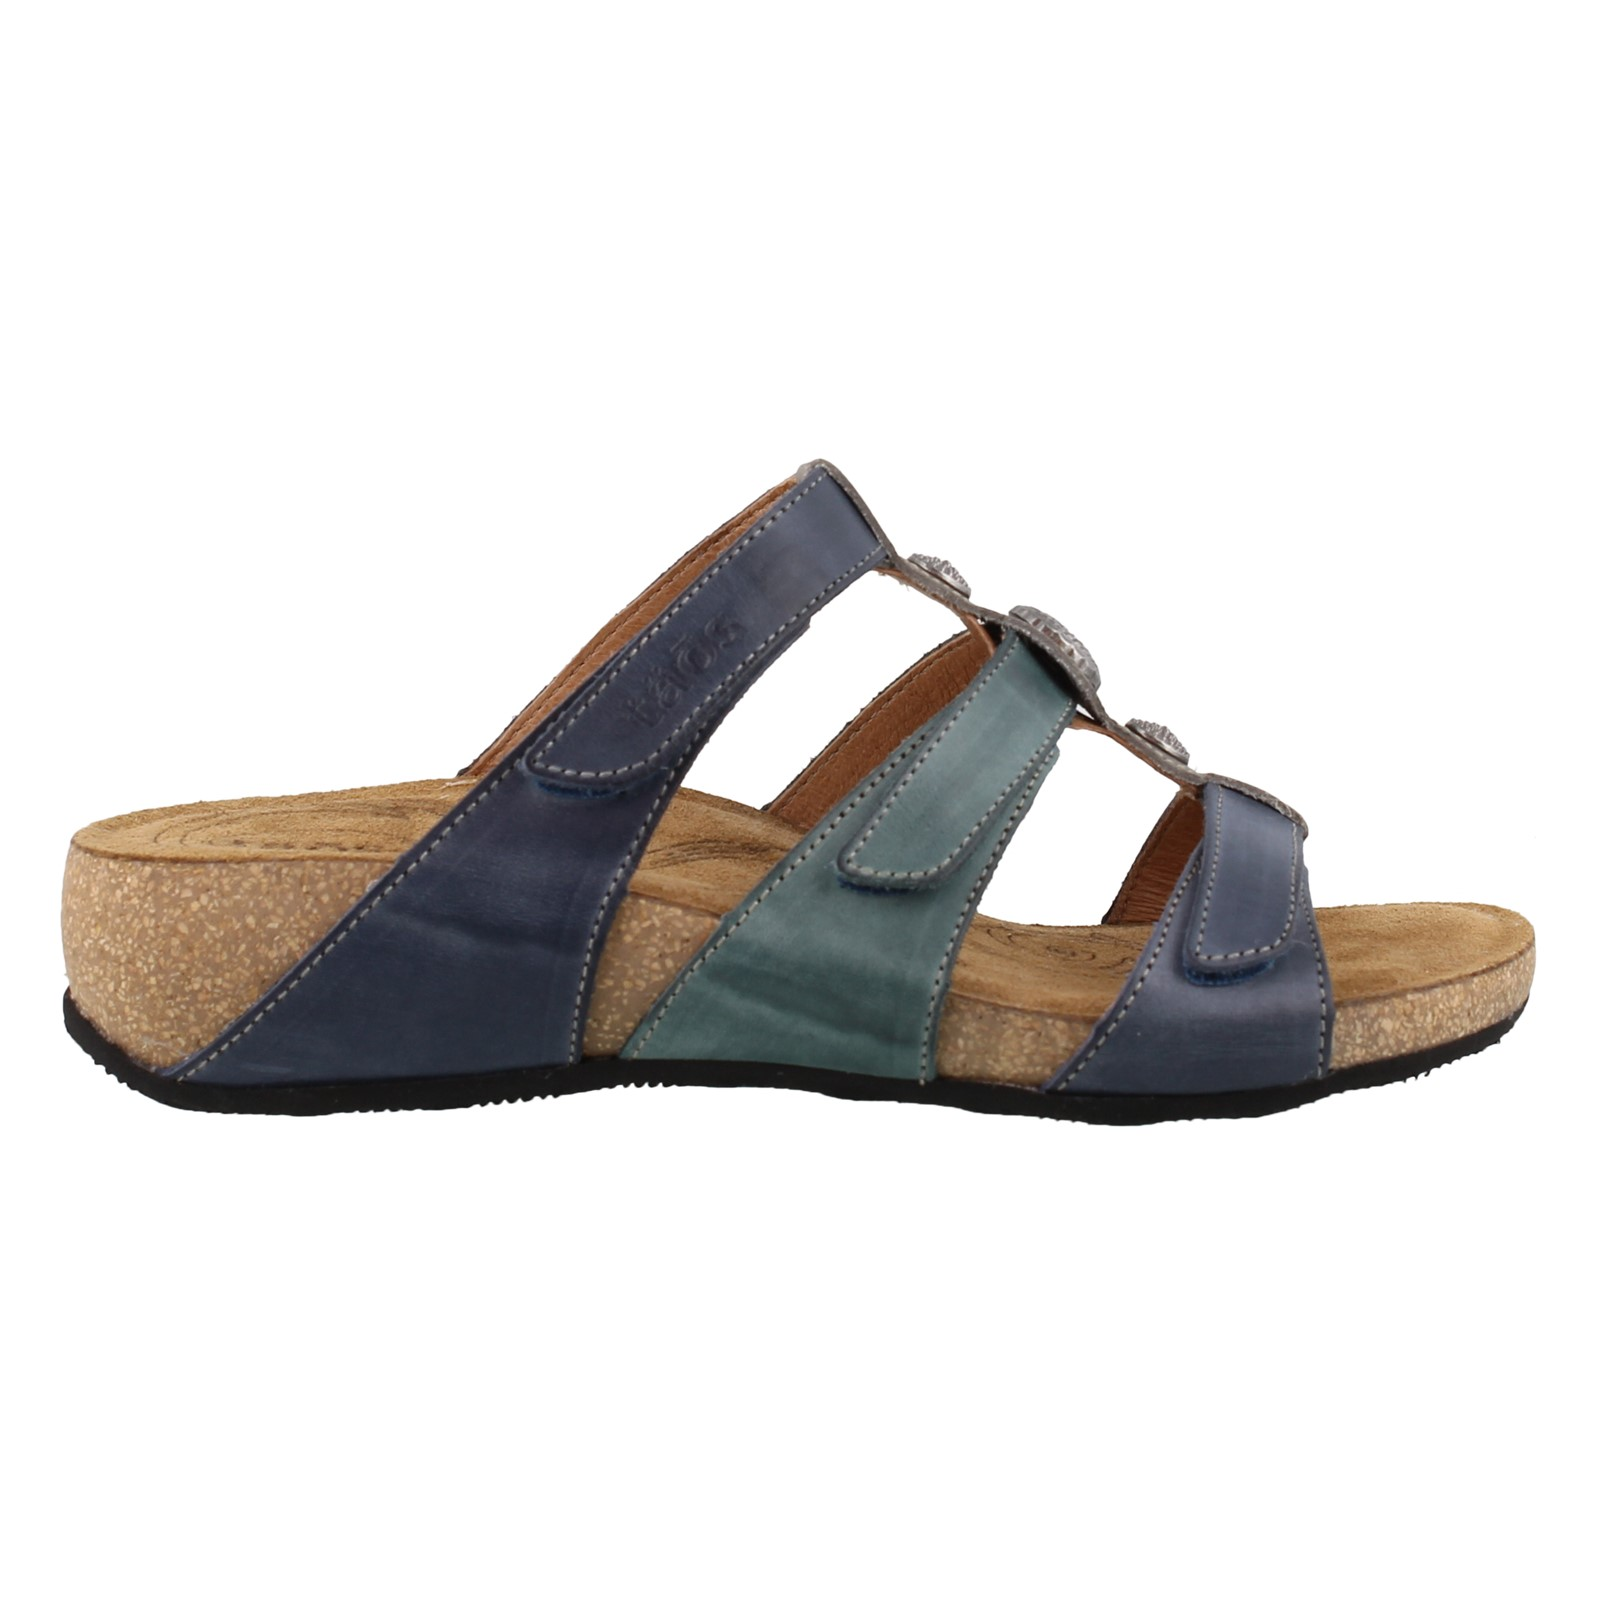 Women's Taos, About Time Slide Sandals